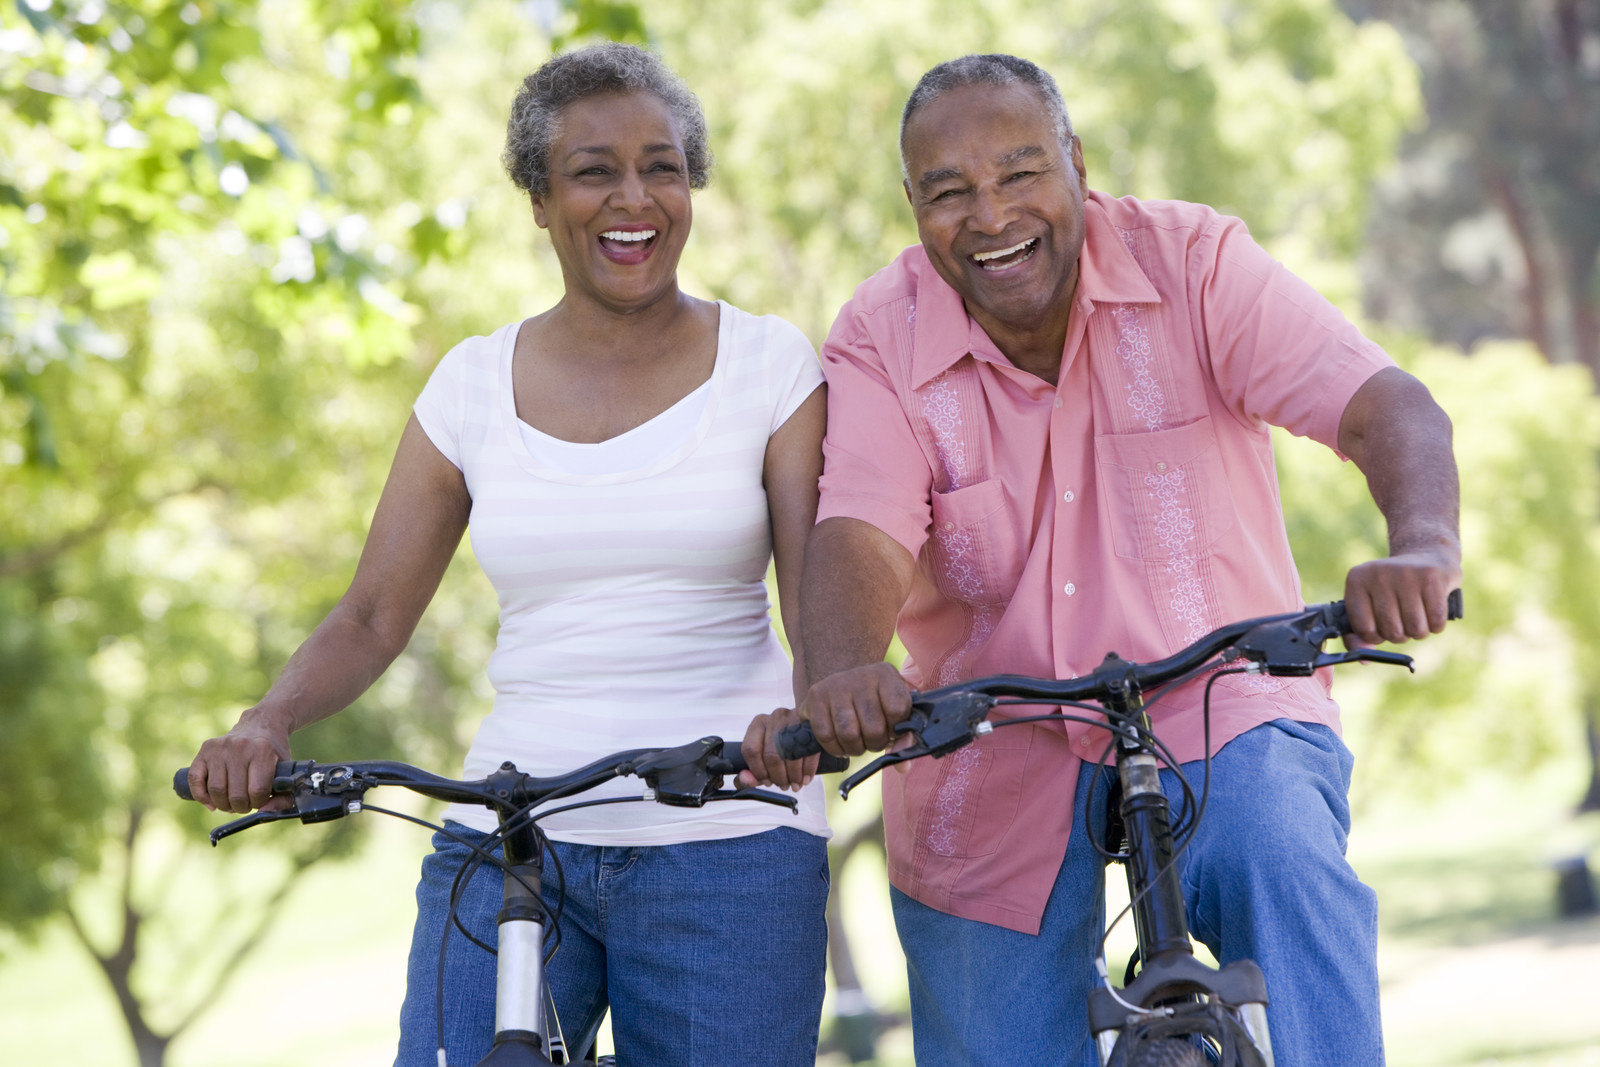 A senior couple smiling riding bikes outside on a sunny day